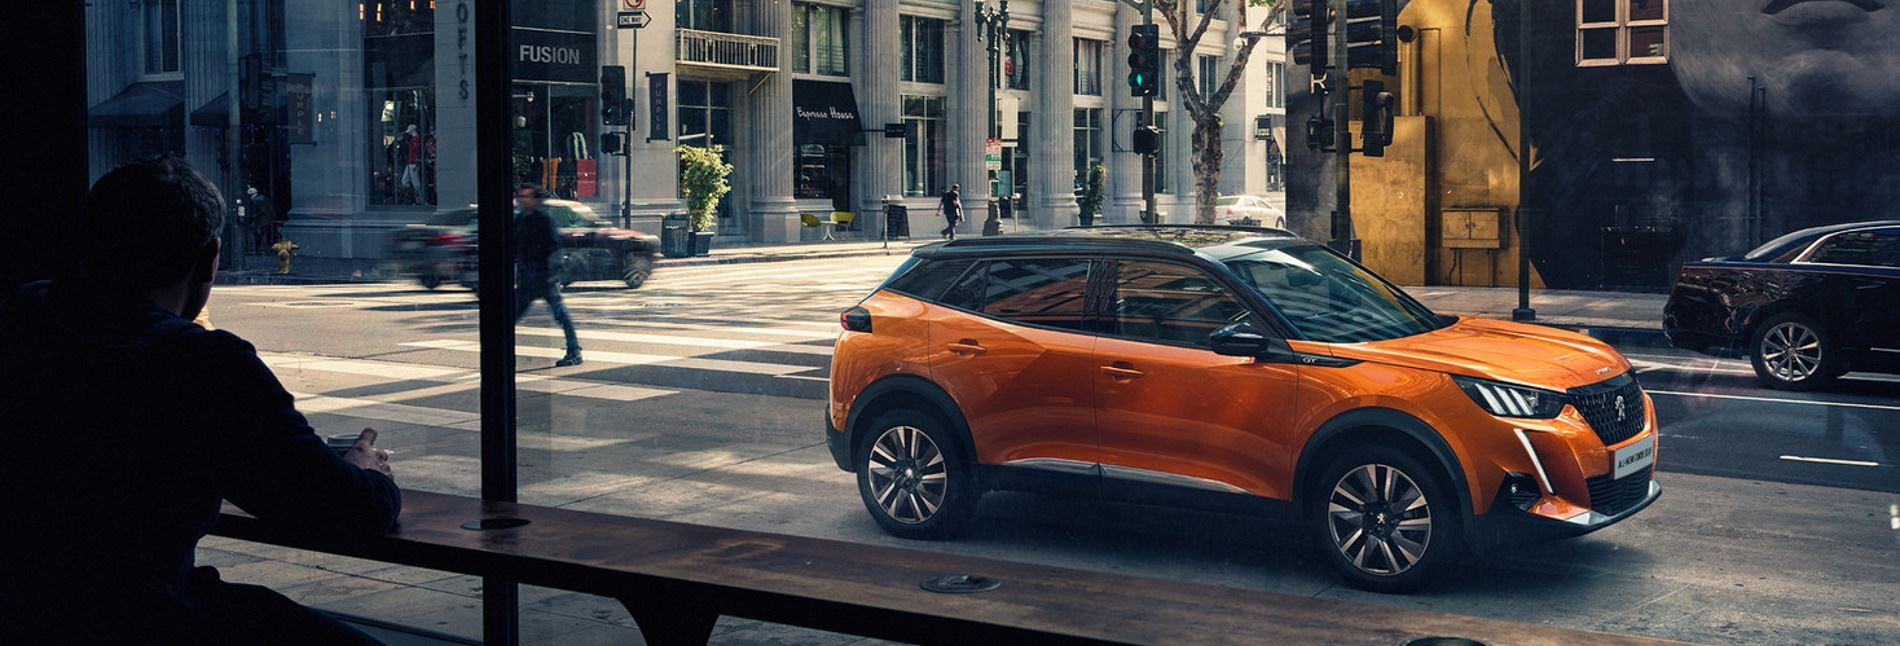 All-New Peugeot 2008 SUV